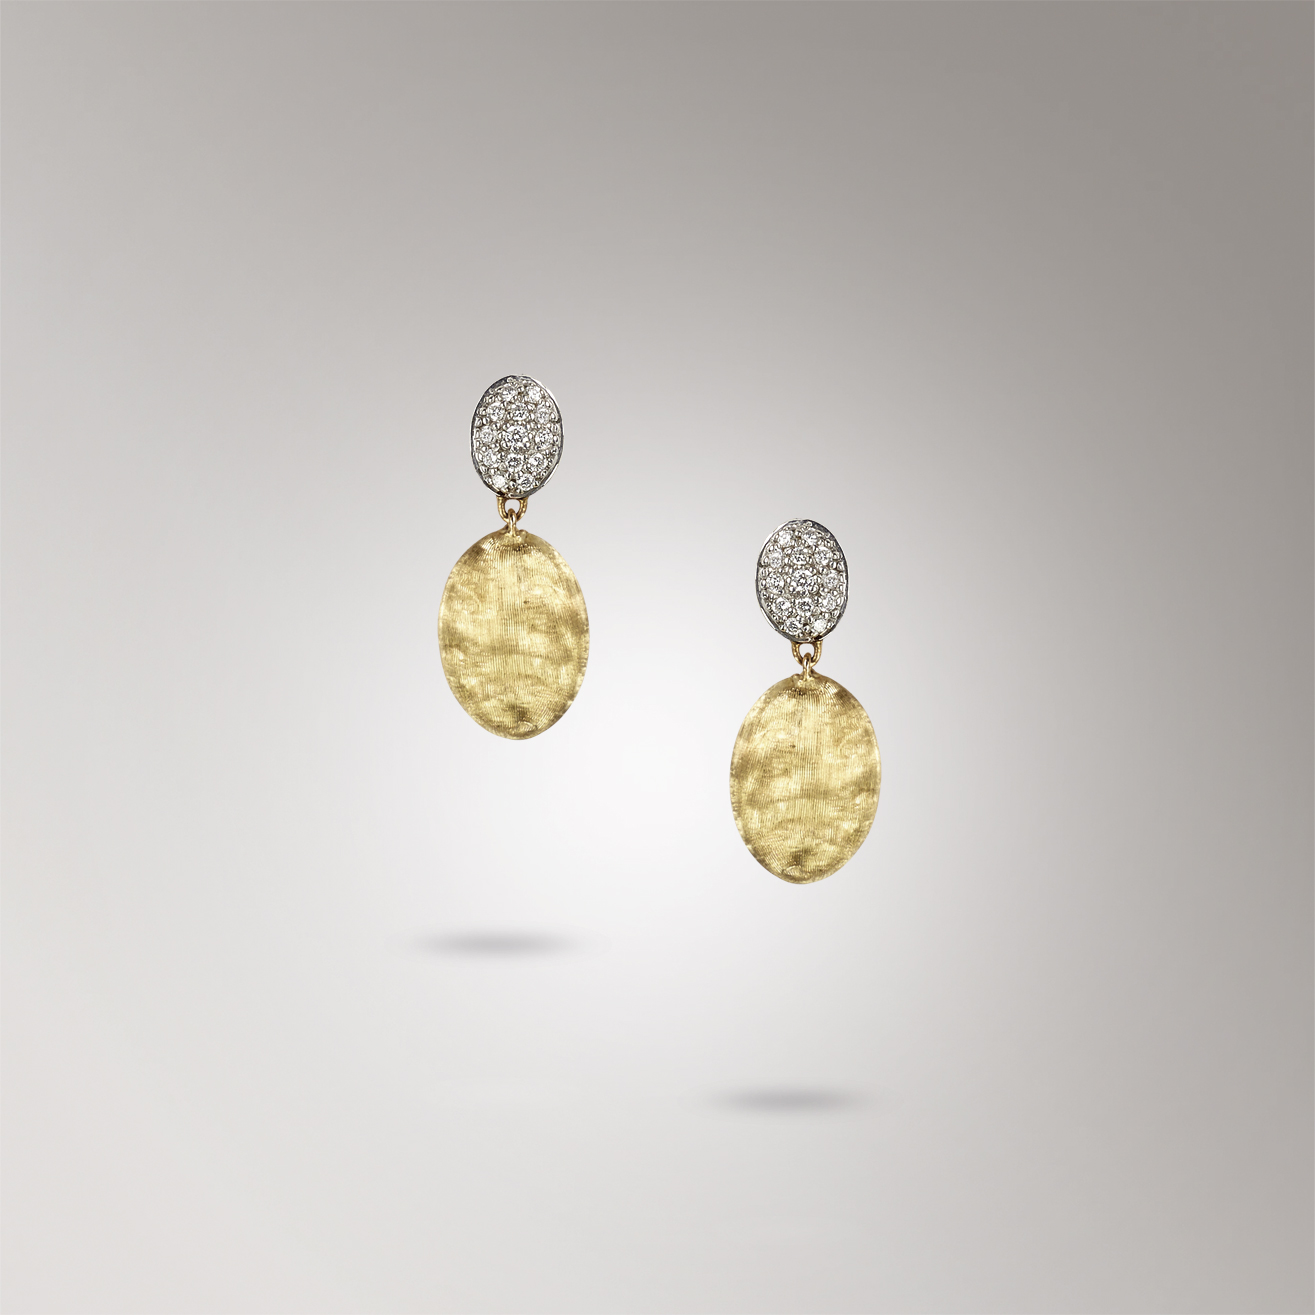 Marco Bicego Siviglia Diamond Earrings